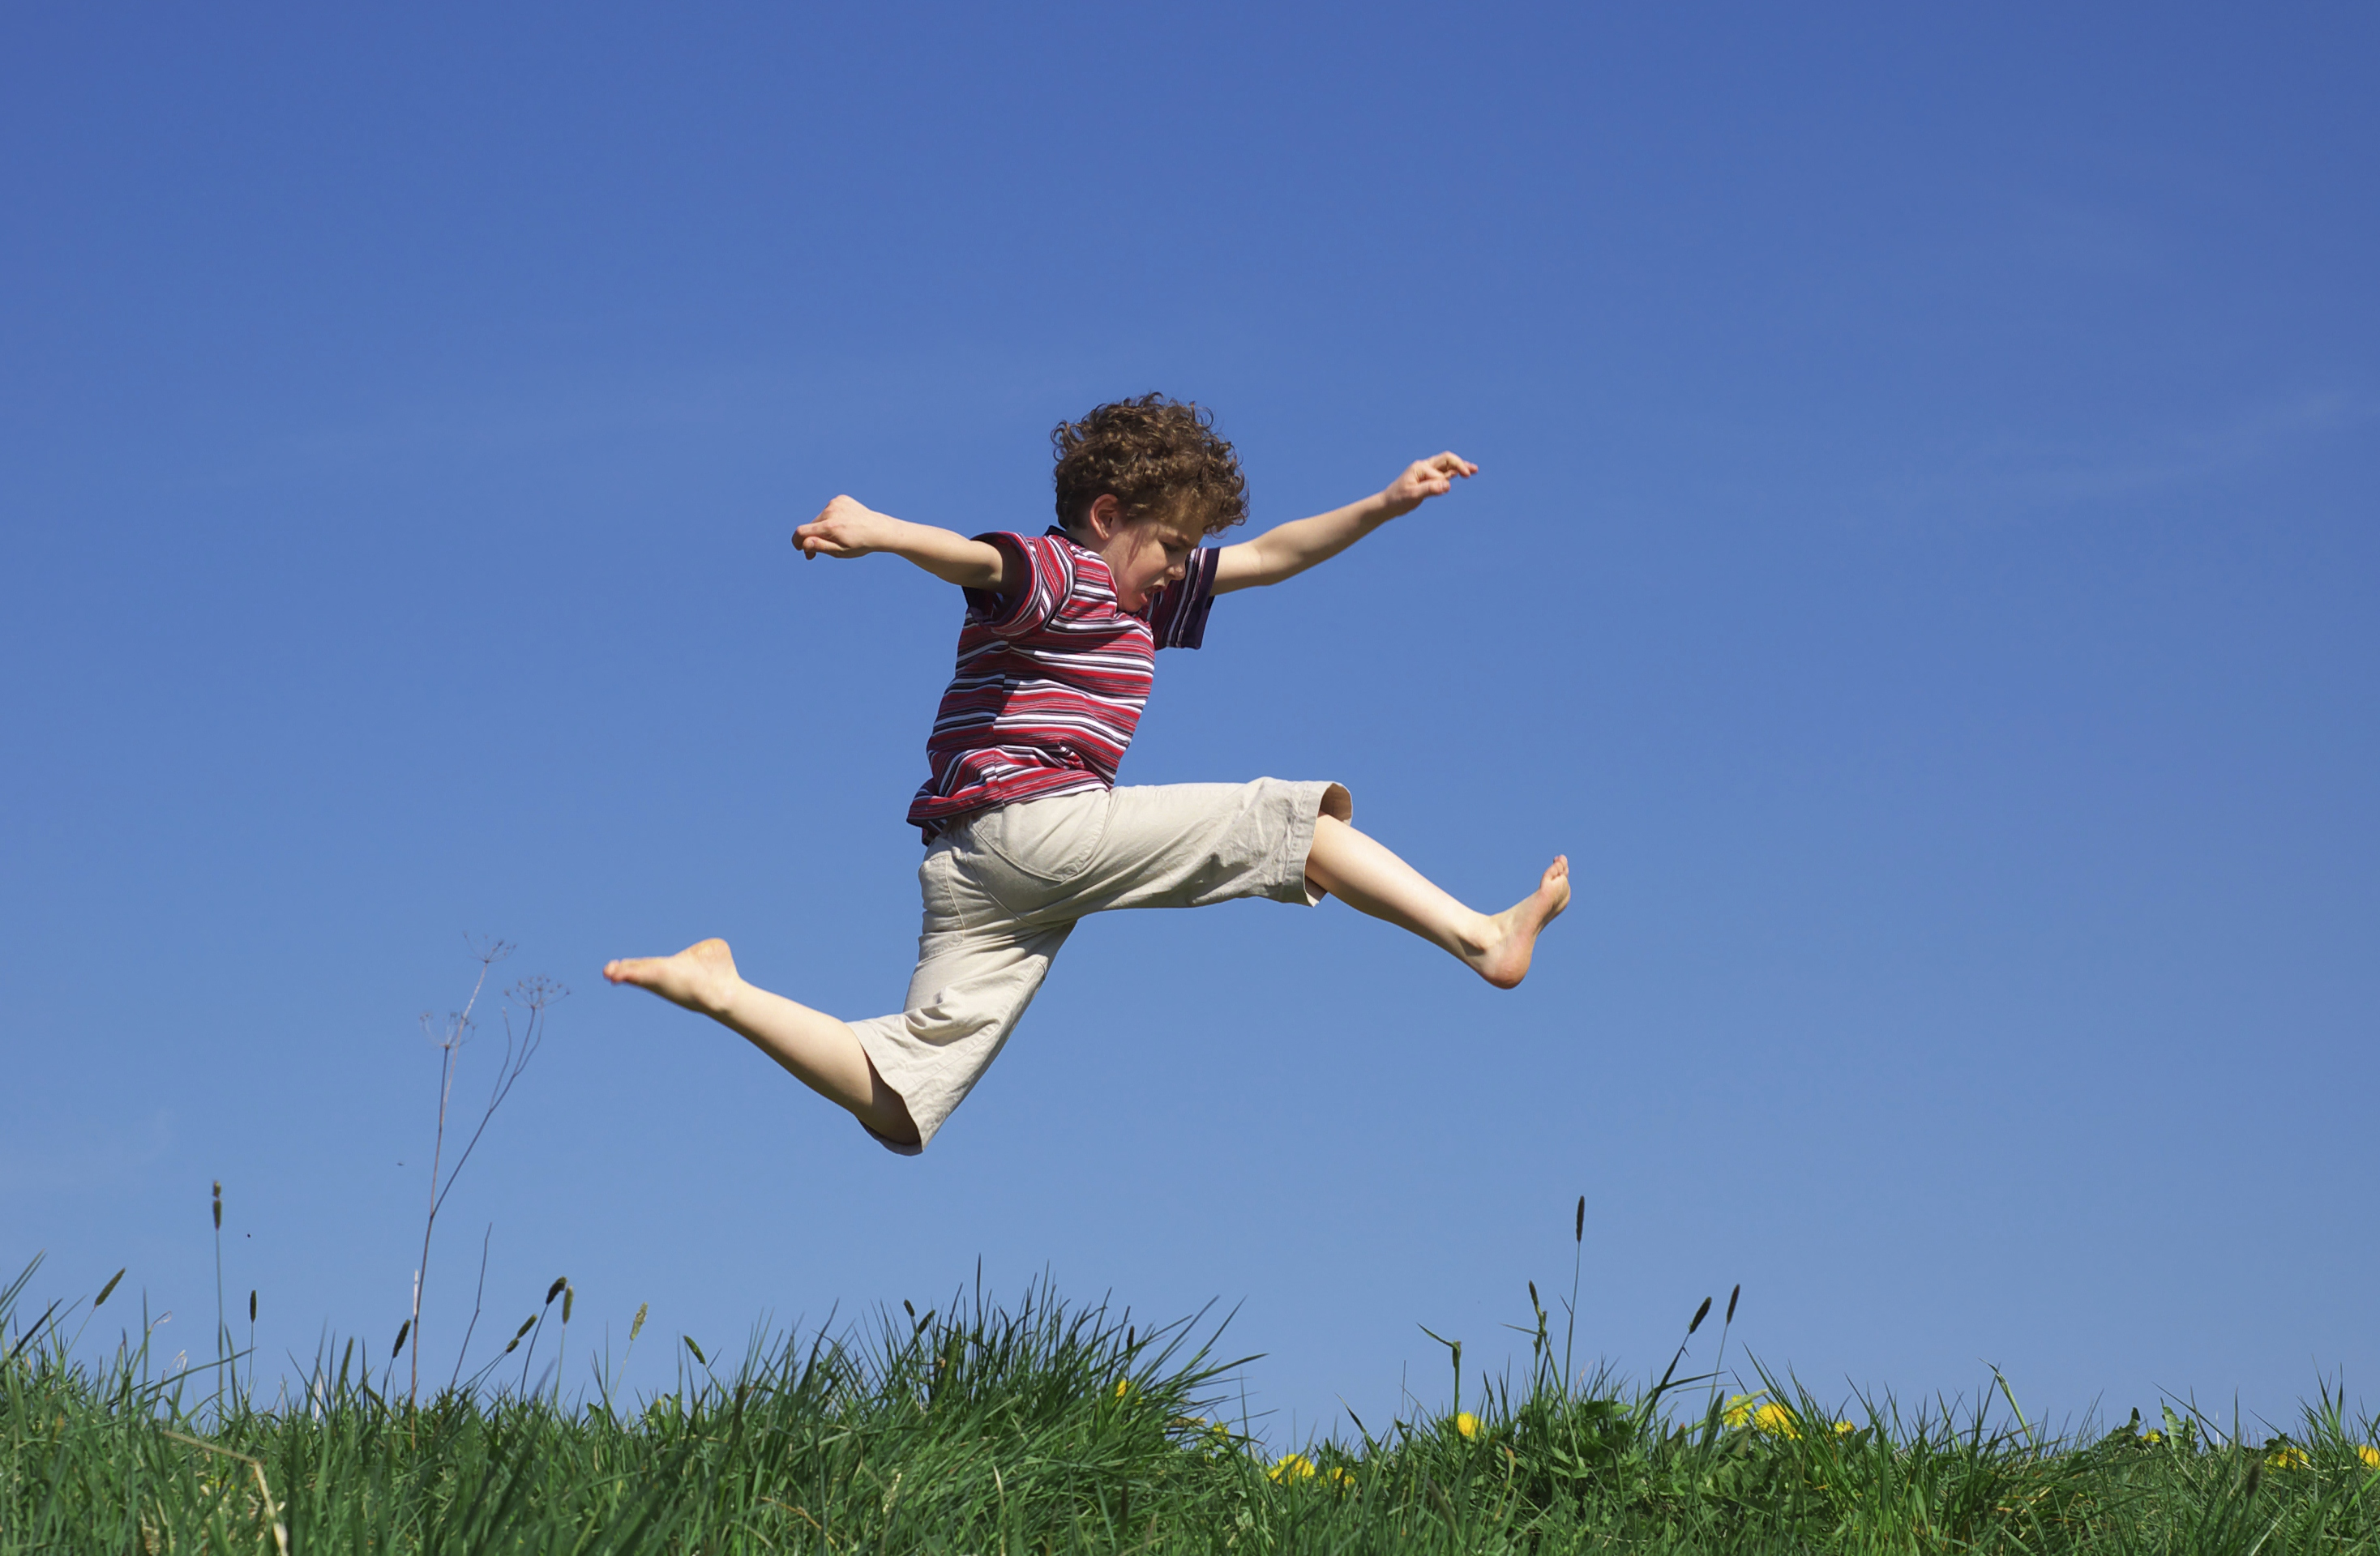 Jump of a Child on a Lawn 794.44 Kb